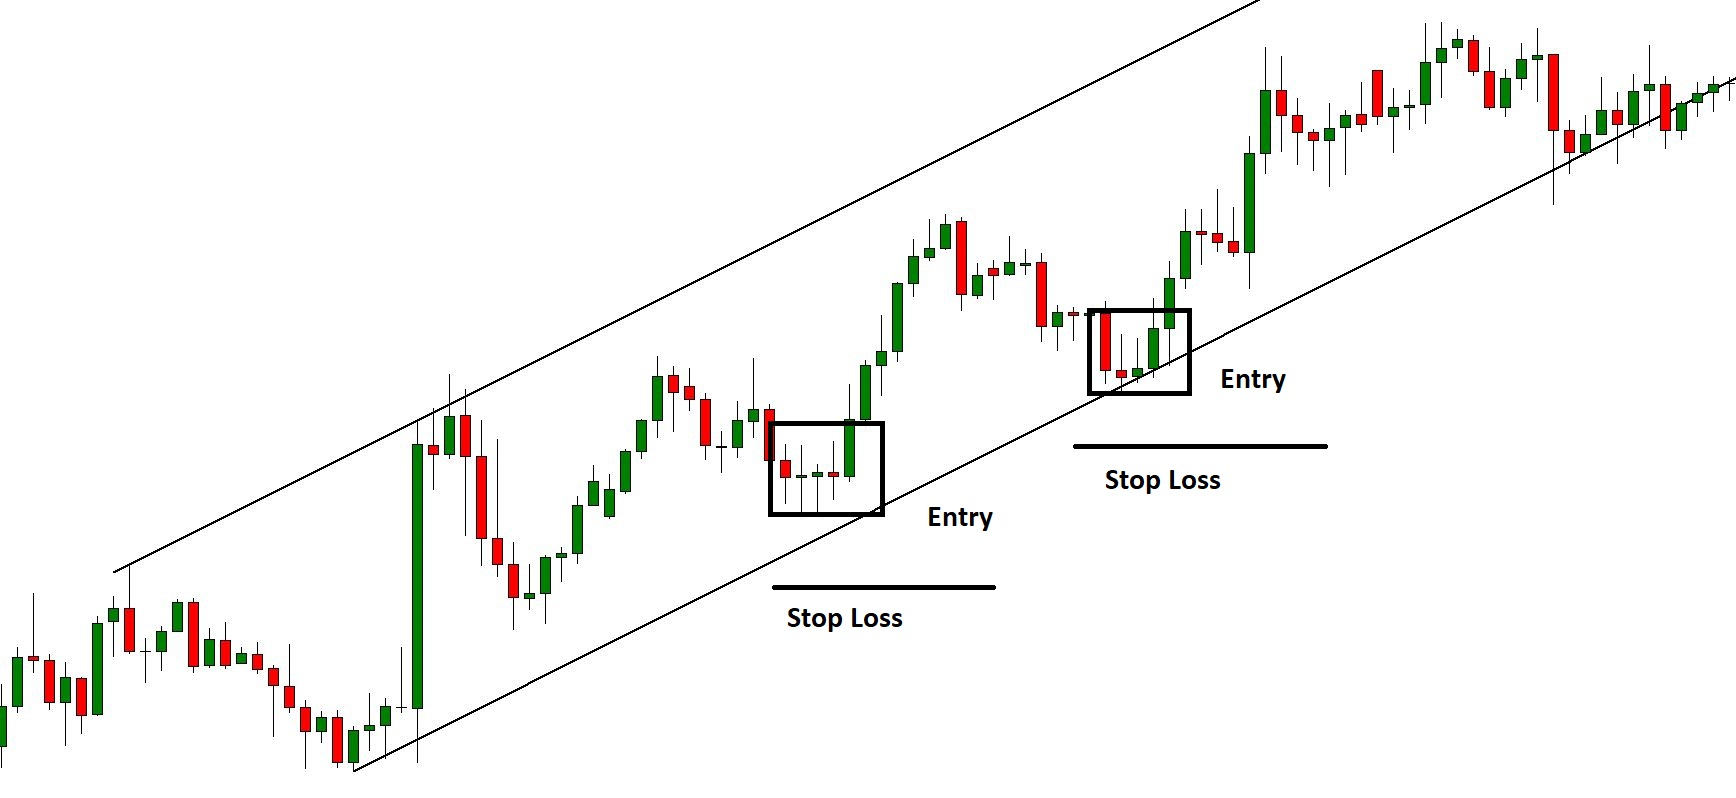 Bullish Channel Stop Loss